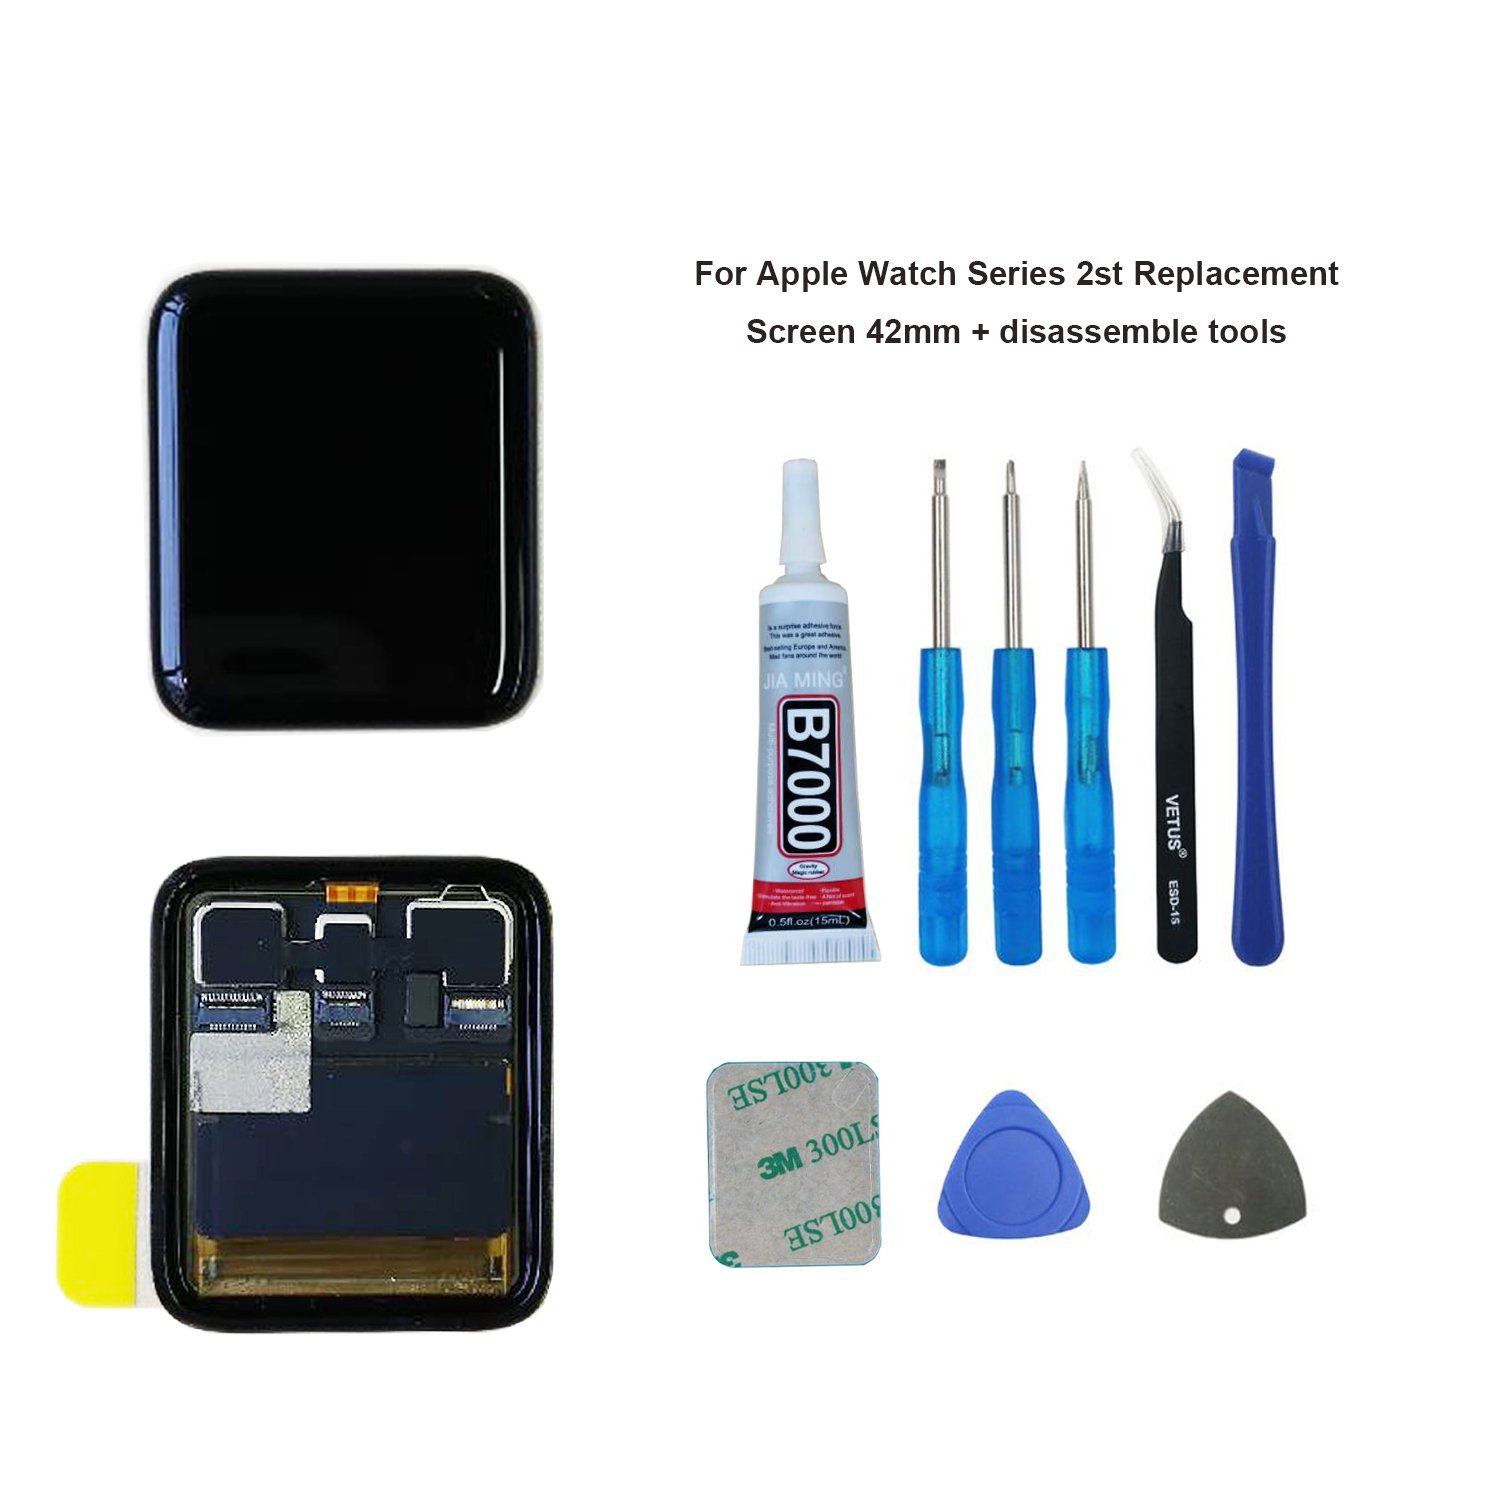 Swark Replacement Compatible Apple Watch 2nd Gen 42mm LCD Display Touchscreen Digitizer Assembly Tools